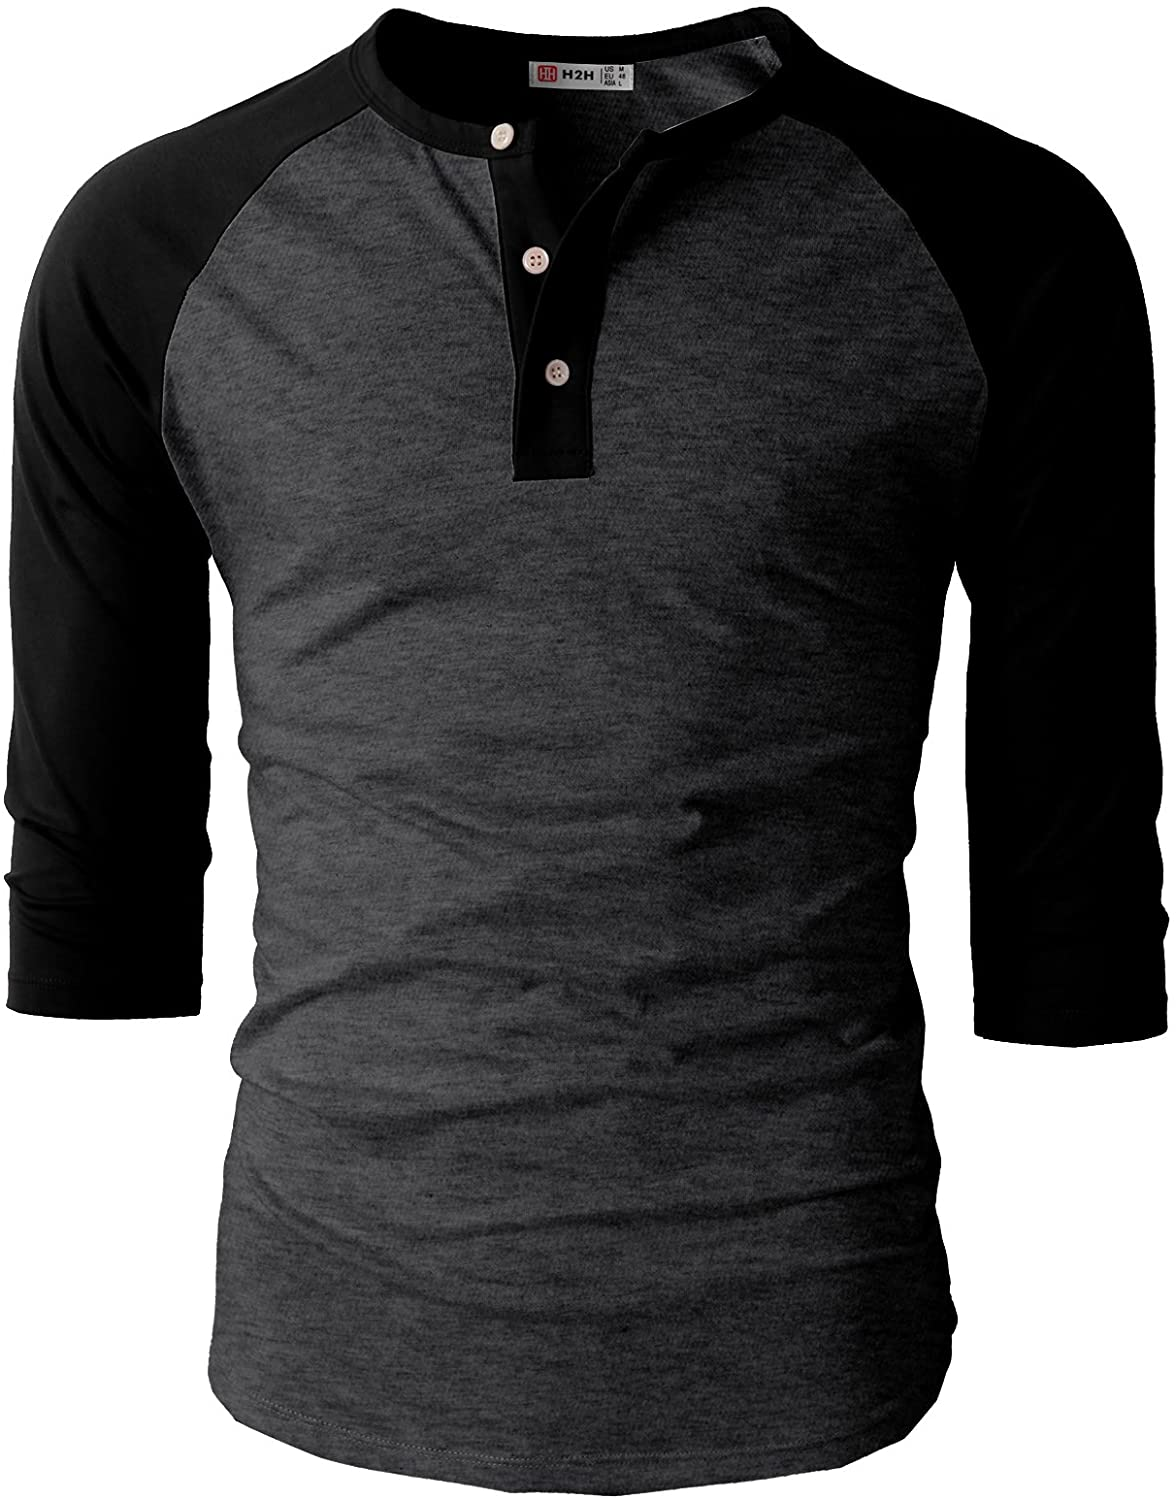 H2H Mens Casual Premium Slim Fit T-Shirts Henley Long & 3/4 Sleeve Spring Summer Clothes